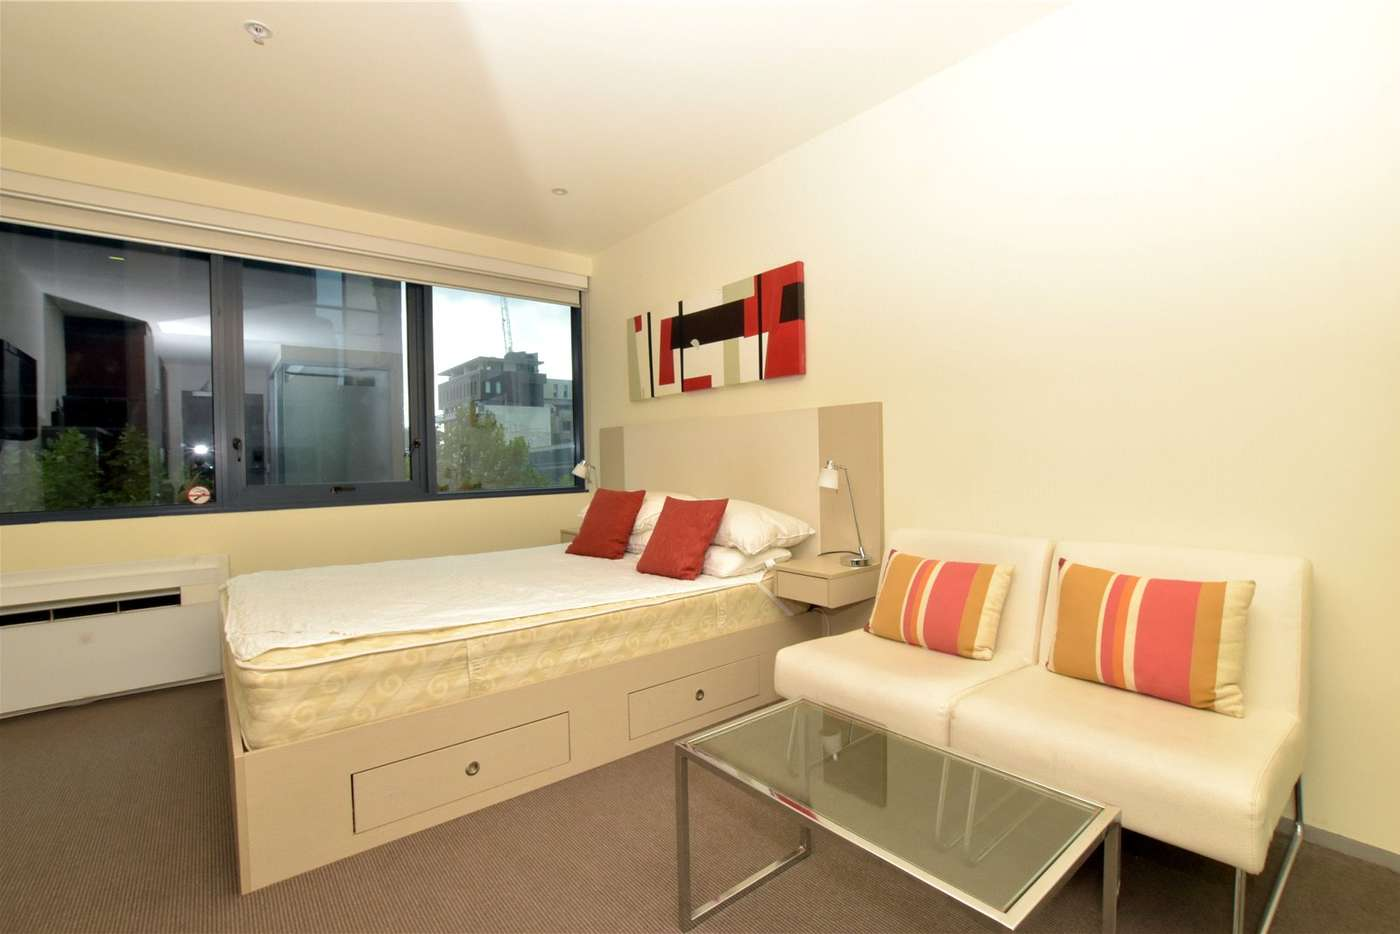 Main view of Homely studio listing, 303/181 ABeckett Street, Melbourne VIC 3000